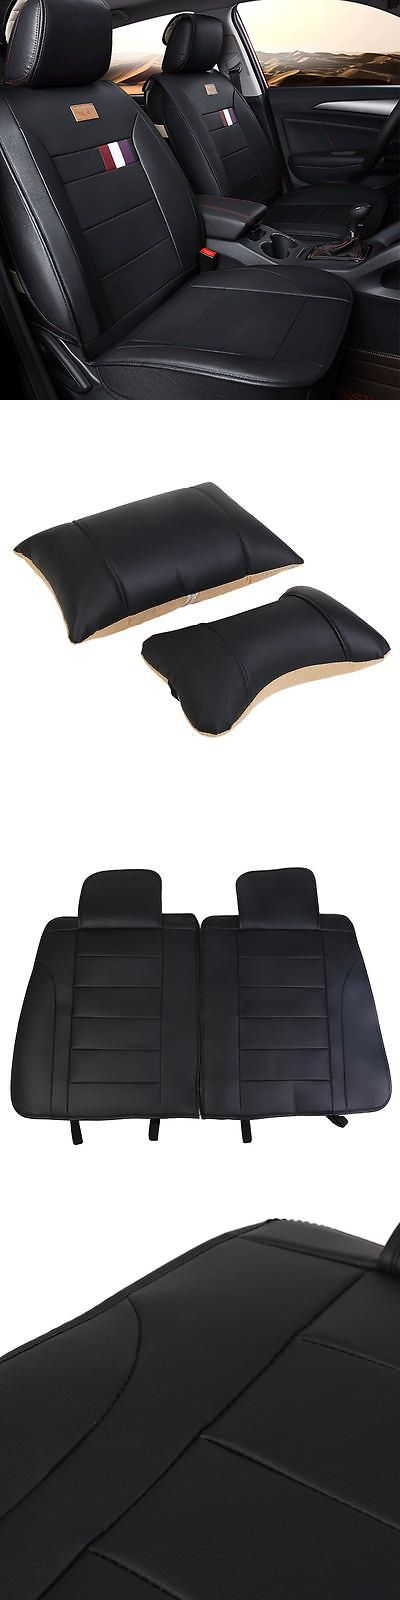 Saddle Covers Seat Covers 177838: Black Color Leather Car Seat Covers Mazda Cushions Modern Sonata Eight Cushions -> BUY IT NOW ONLY: $98.39 on eBay!